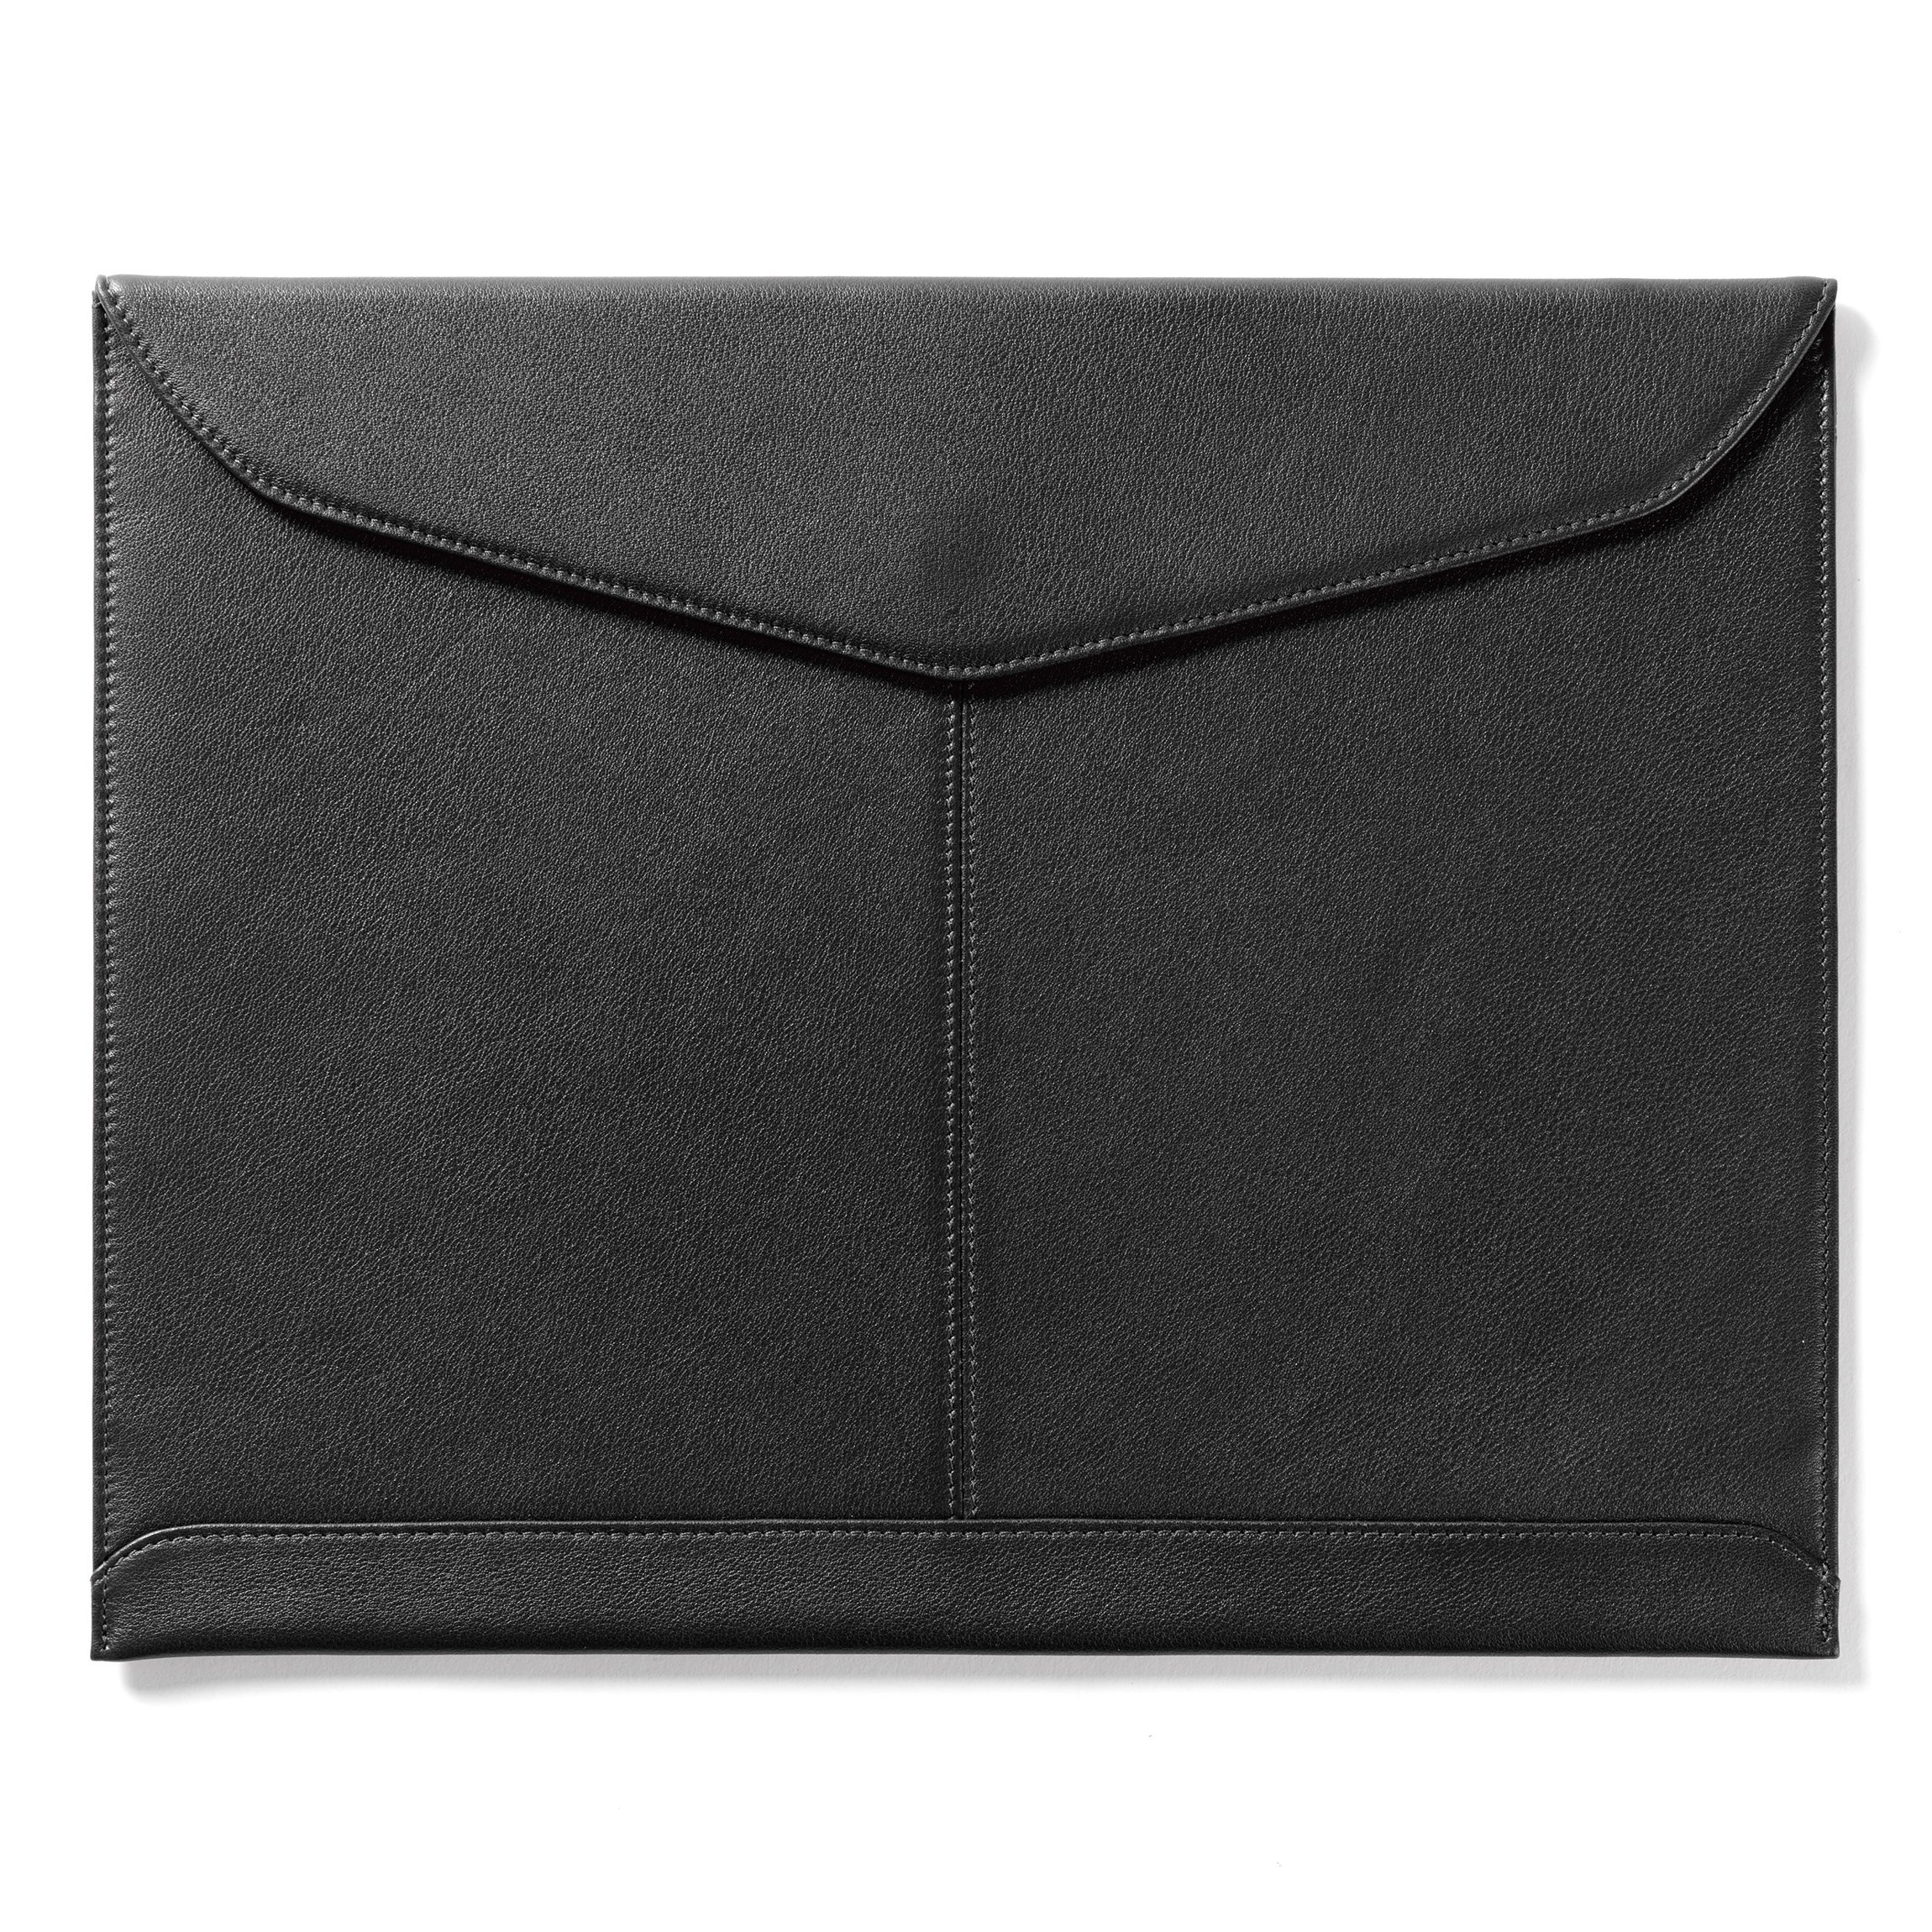 Leatherology Document Envelope with Magnetic Closure - Full Grain Leather - Black Onyx (black)